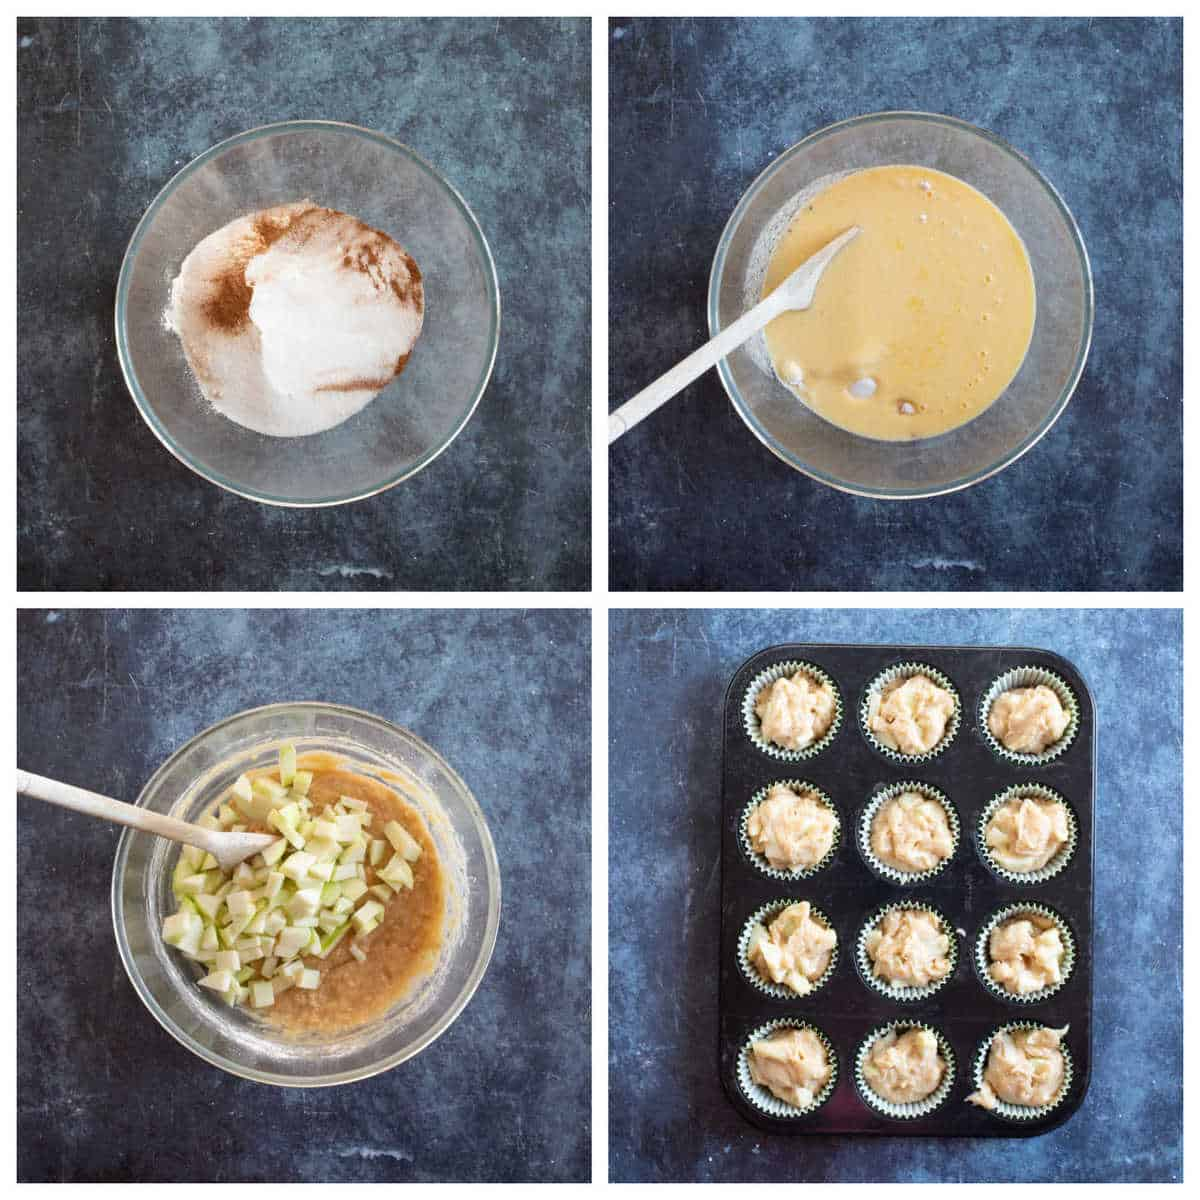 Step by step photo instructions for making the apple muffins.